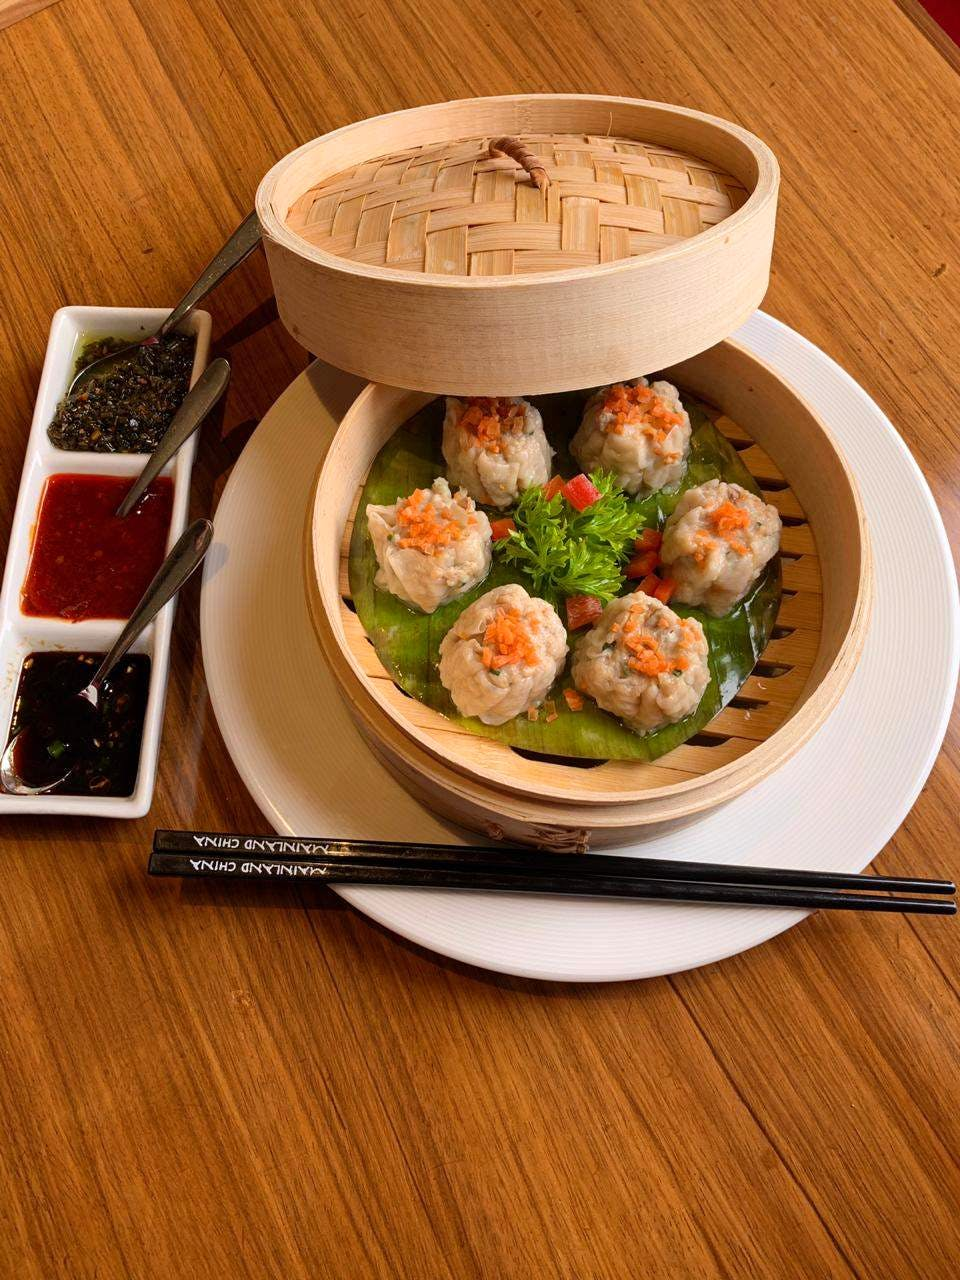 Enjoy The Weekend Brunch At Asia Kitchen For Only Just INR 440